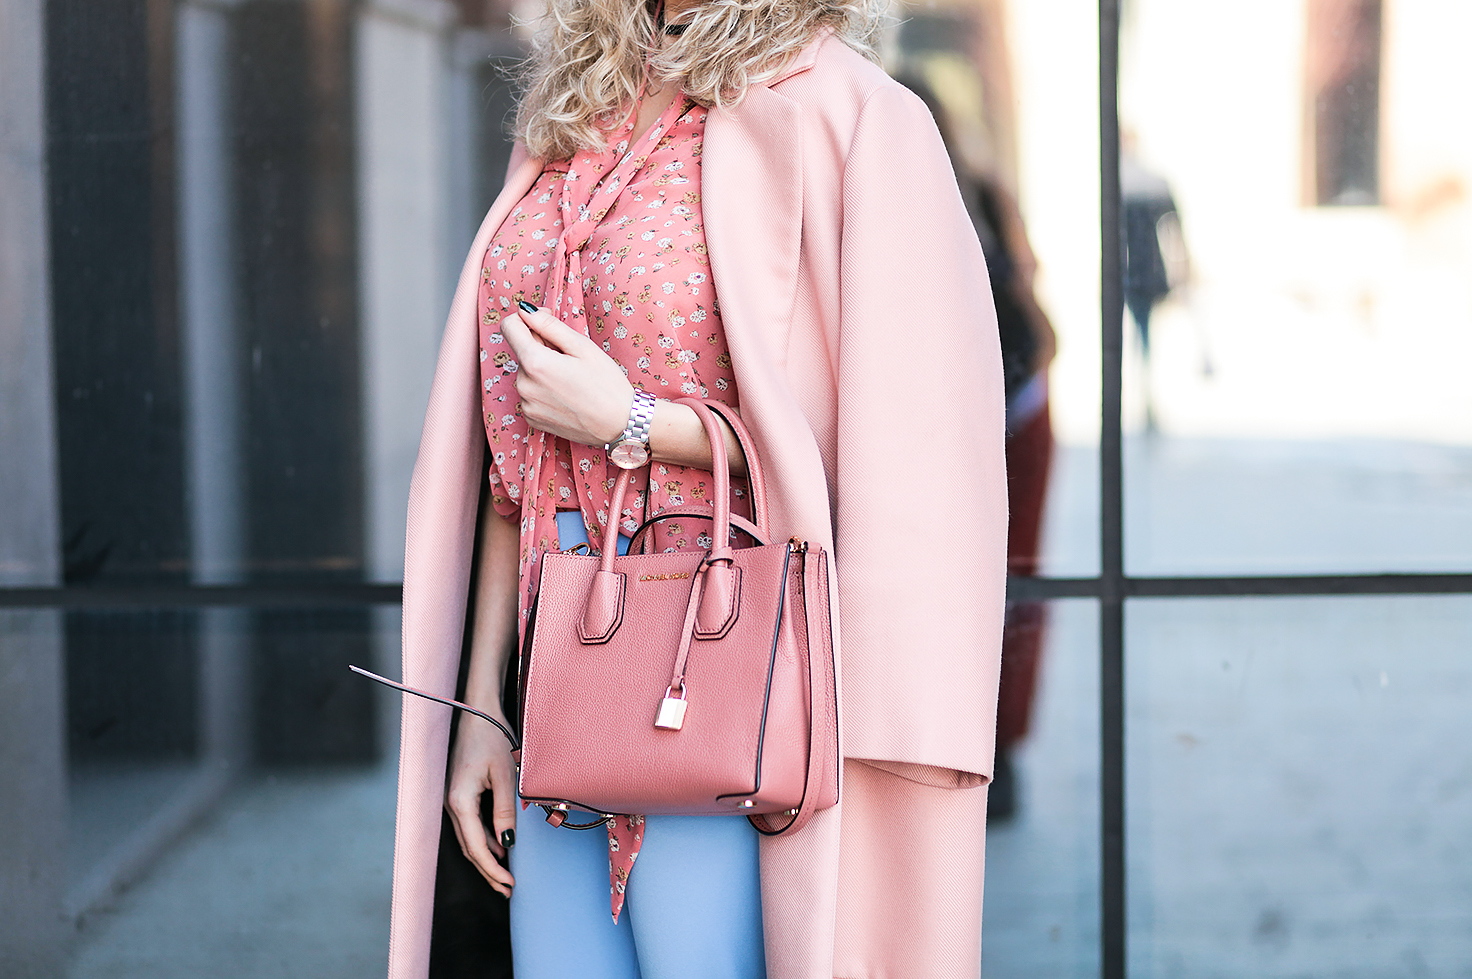 Rita_maslova_ritalifestyle_moscow_fashion_blogger_blue_pants_pink_coat_silver_shoes